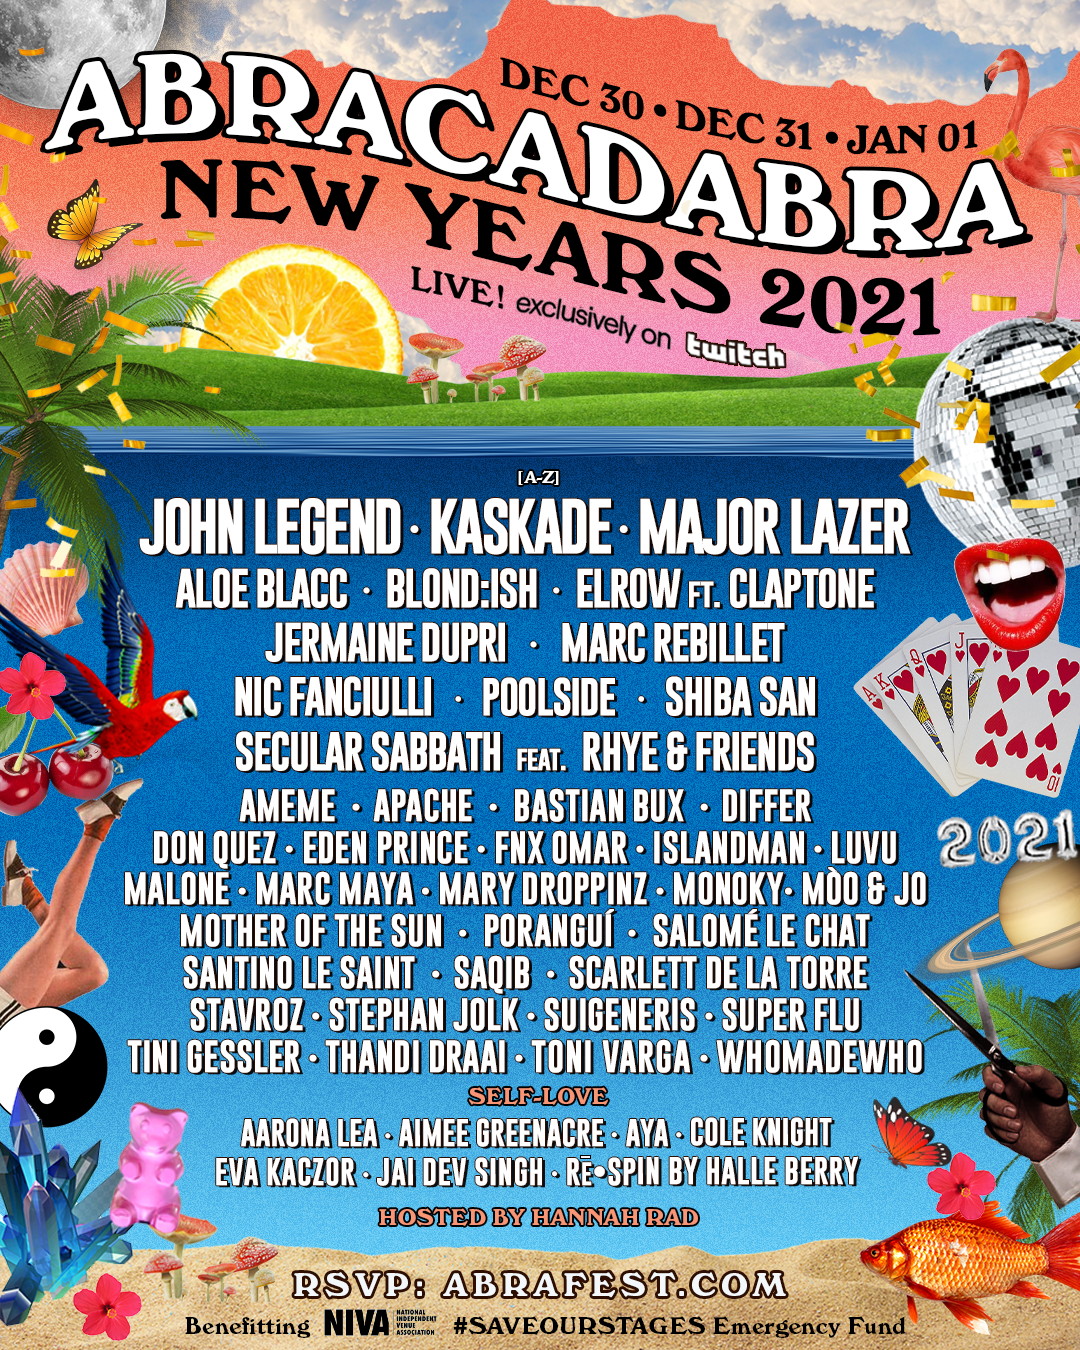 ABRACADABRA Returns to Ring in 2021; Announces Festival Lineup for Three-Day, 24/7 Livestream Dec. 30-Jan. 1 Exclusively on Twitch